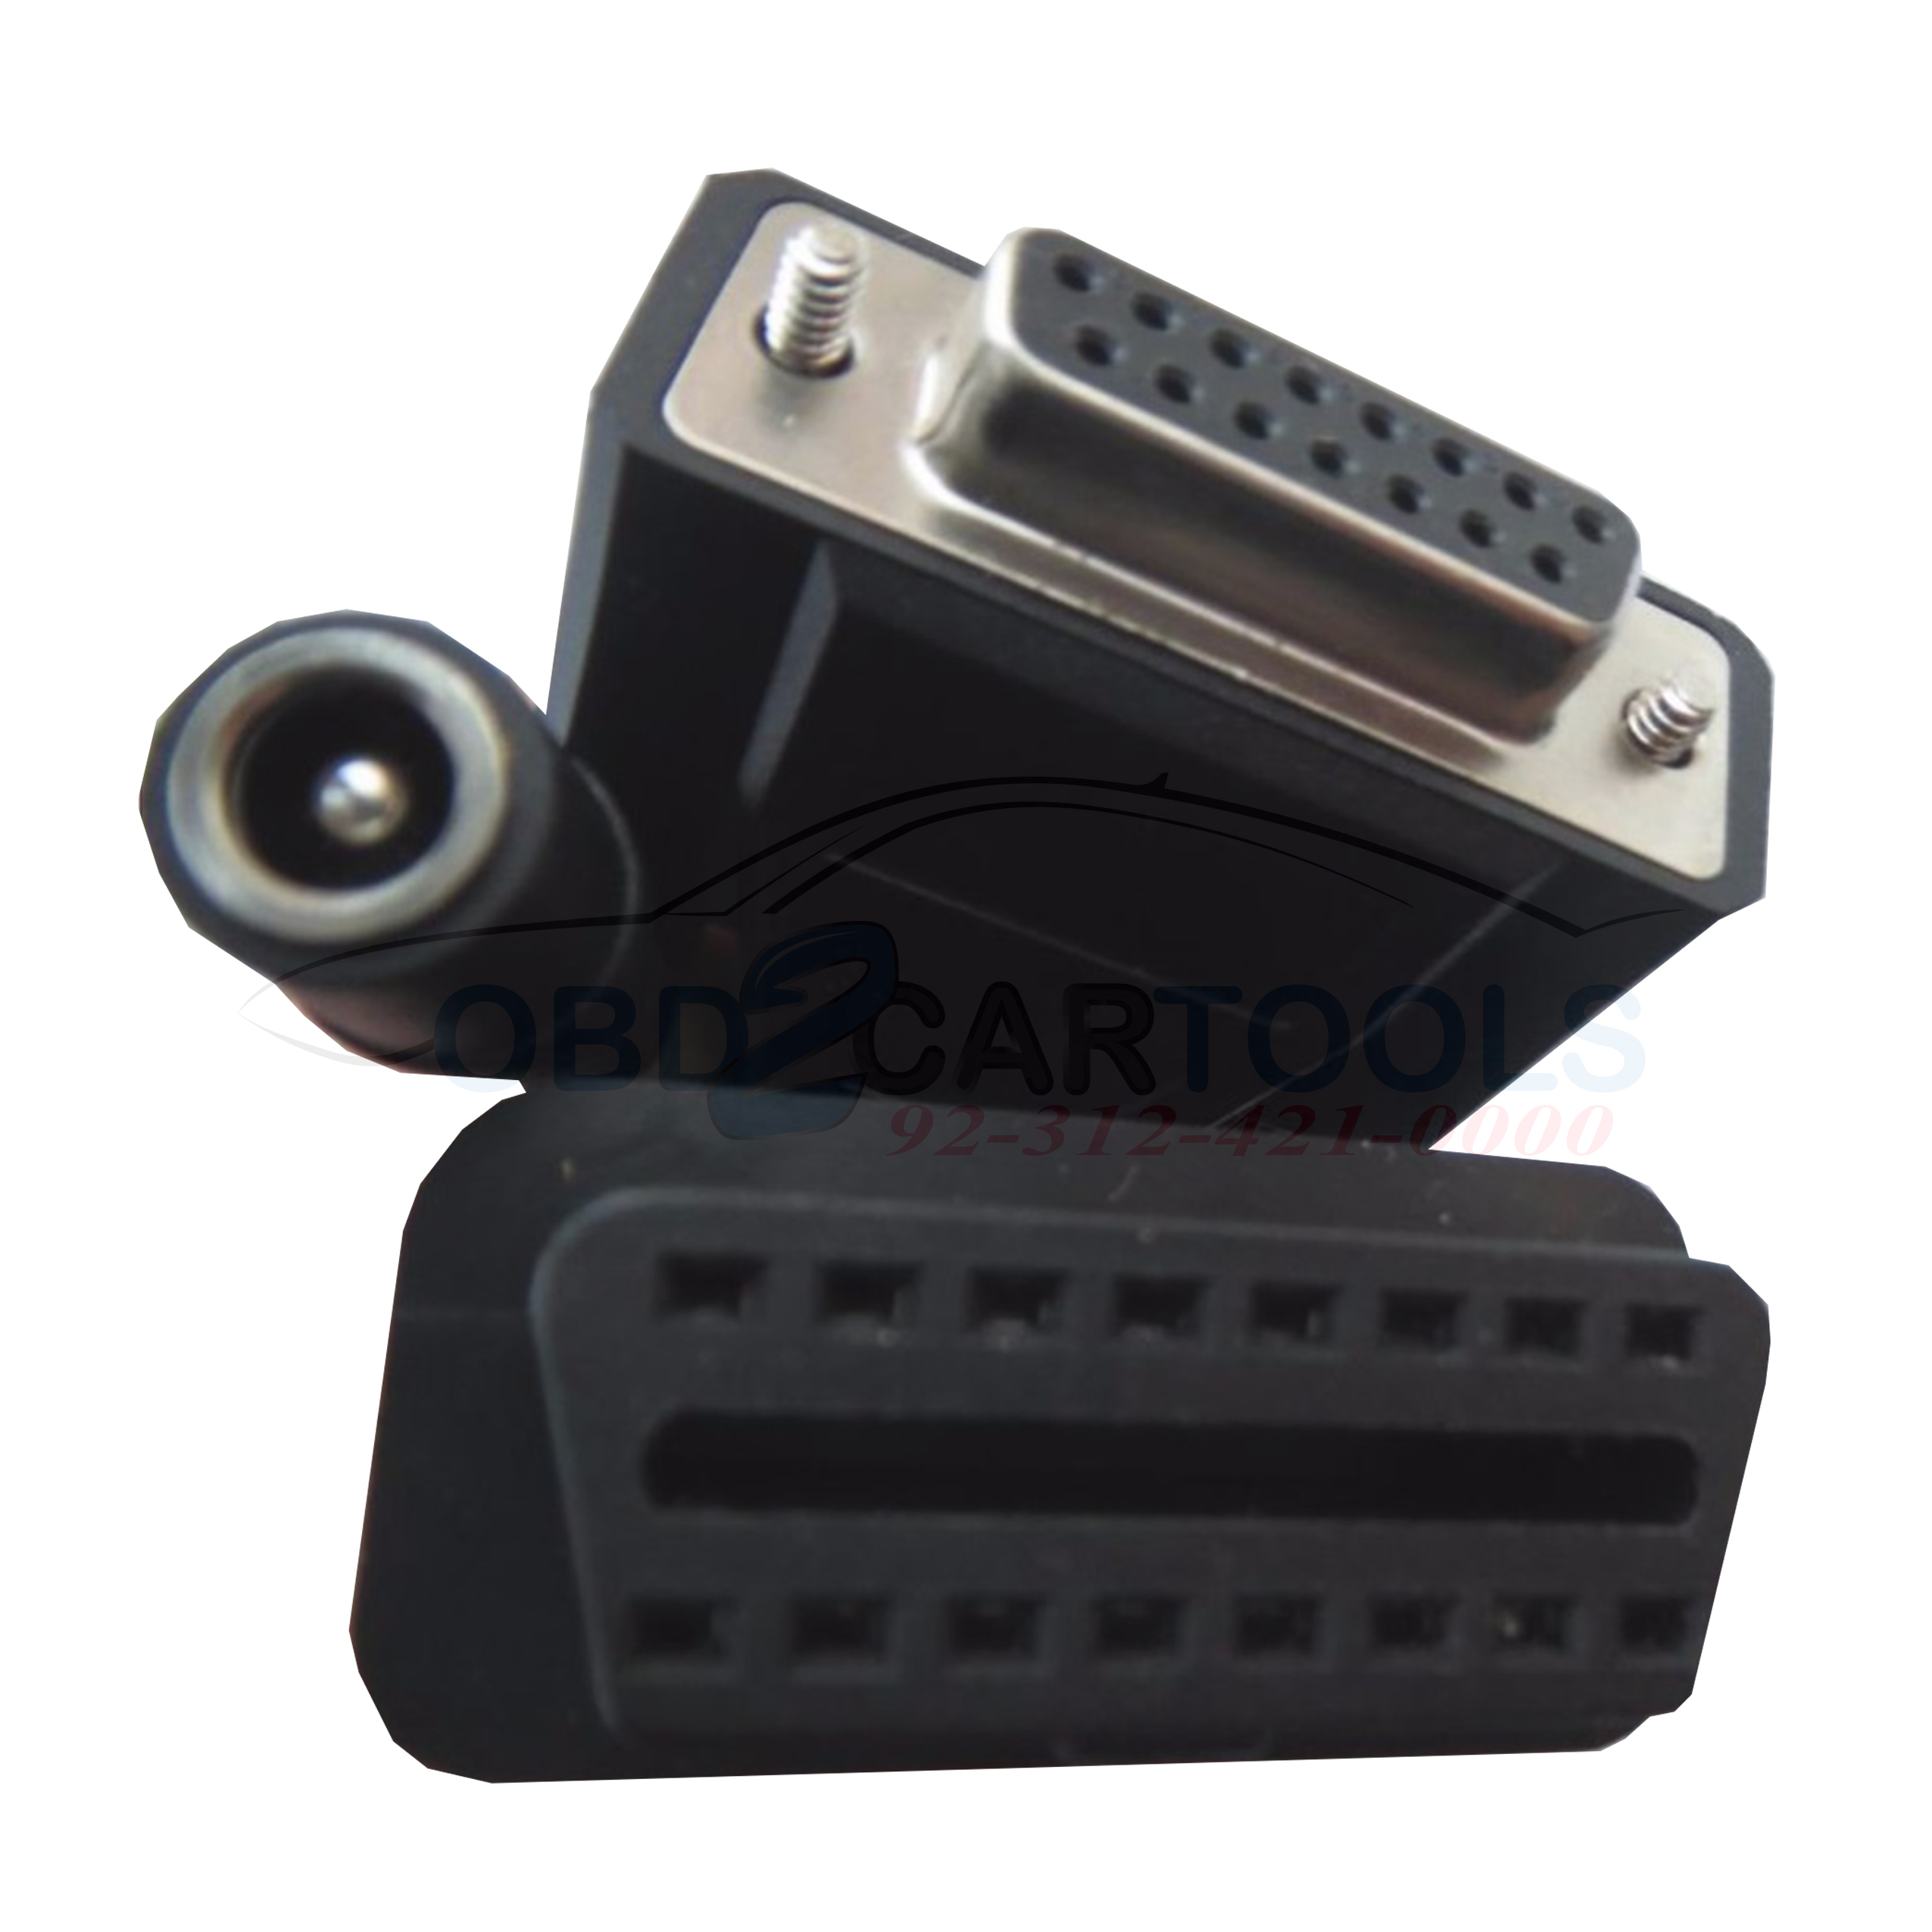 product adapter interface computers adapters cradle module tibs mhi benz bluetooth accessories network mercedes